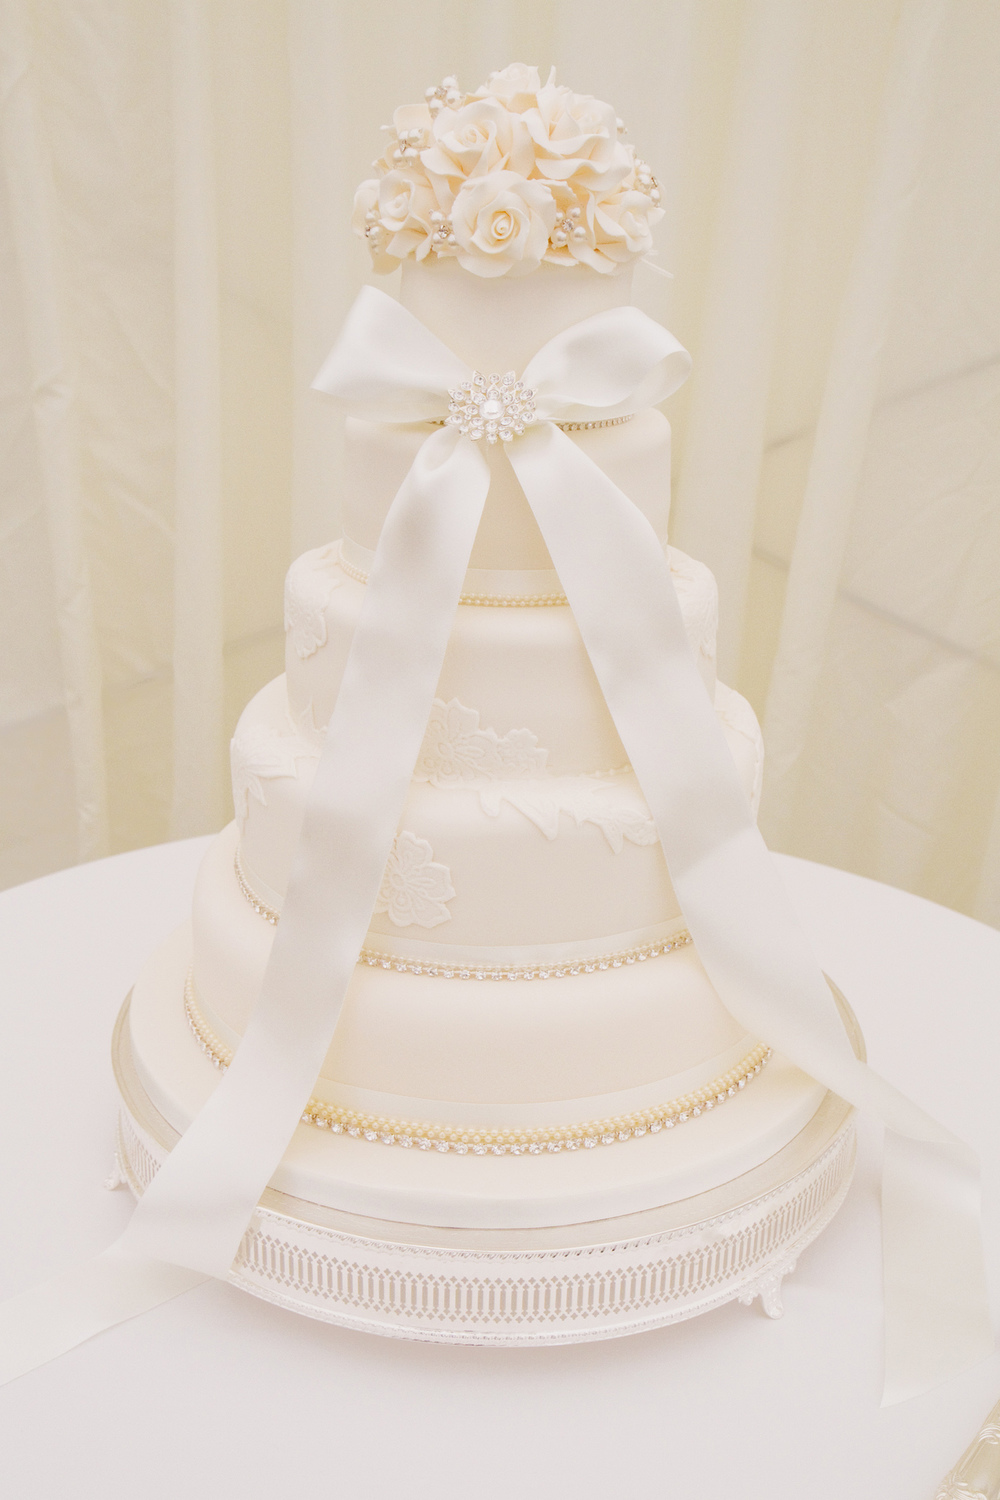 5 Tiered Ivory Wedding Cake, Helen England Photography, Kent, U.K